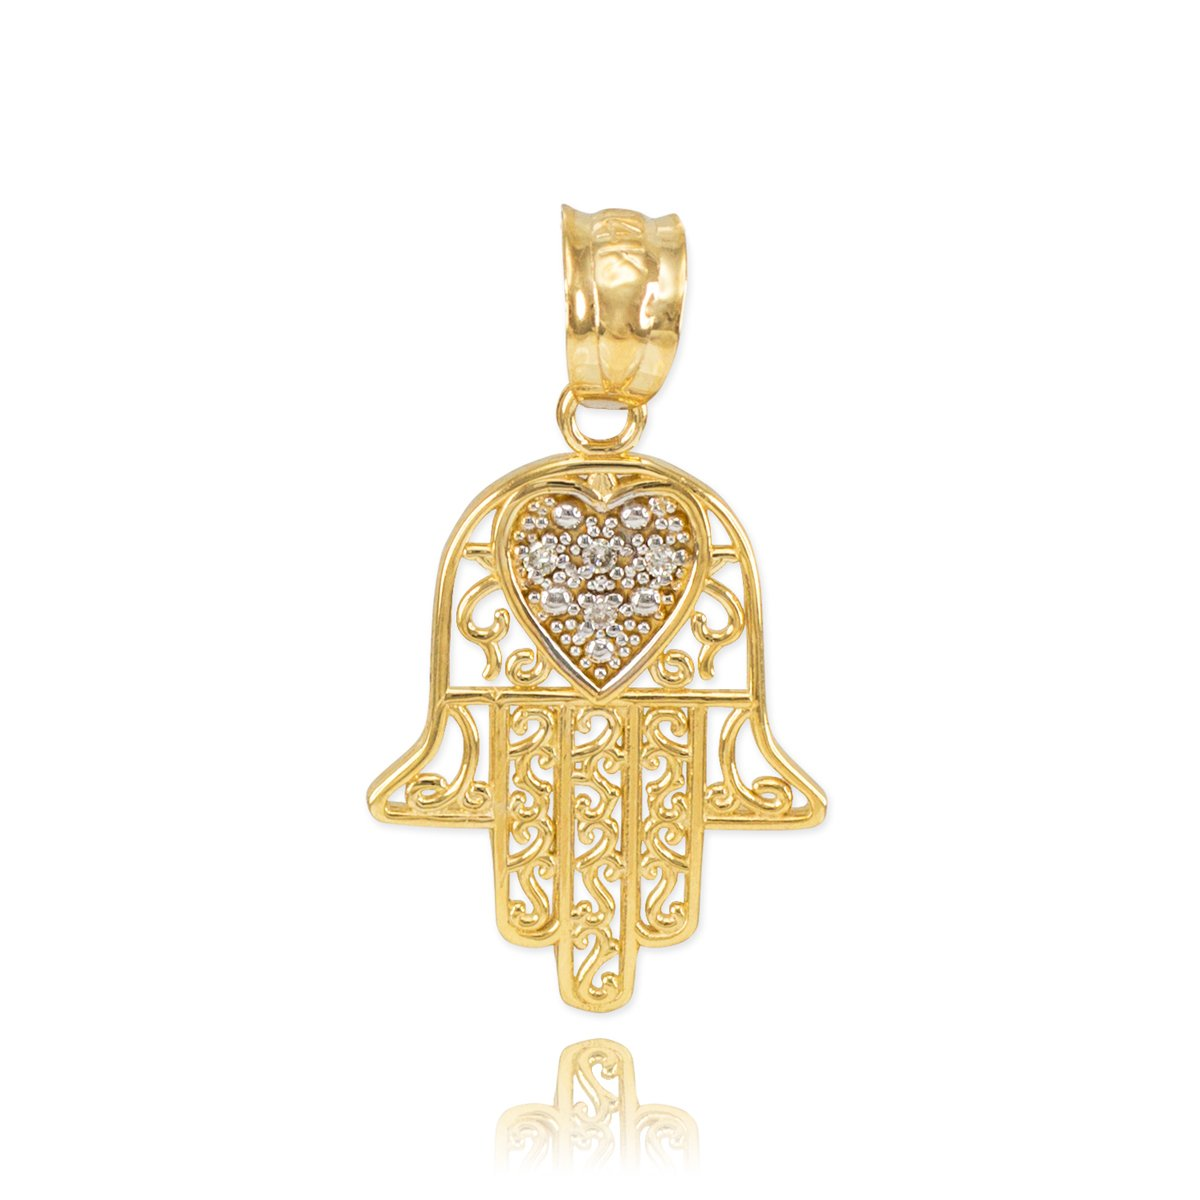 Solid 14k Yellow Gold Diamond-Accented Heart Filigree-Style Hamsa Charm Pendant by Middle Eastern Jewelry (Image #1)